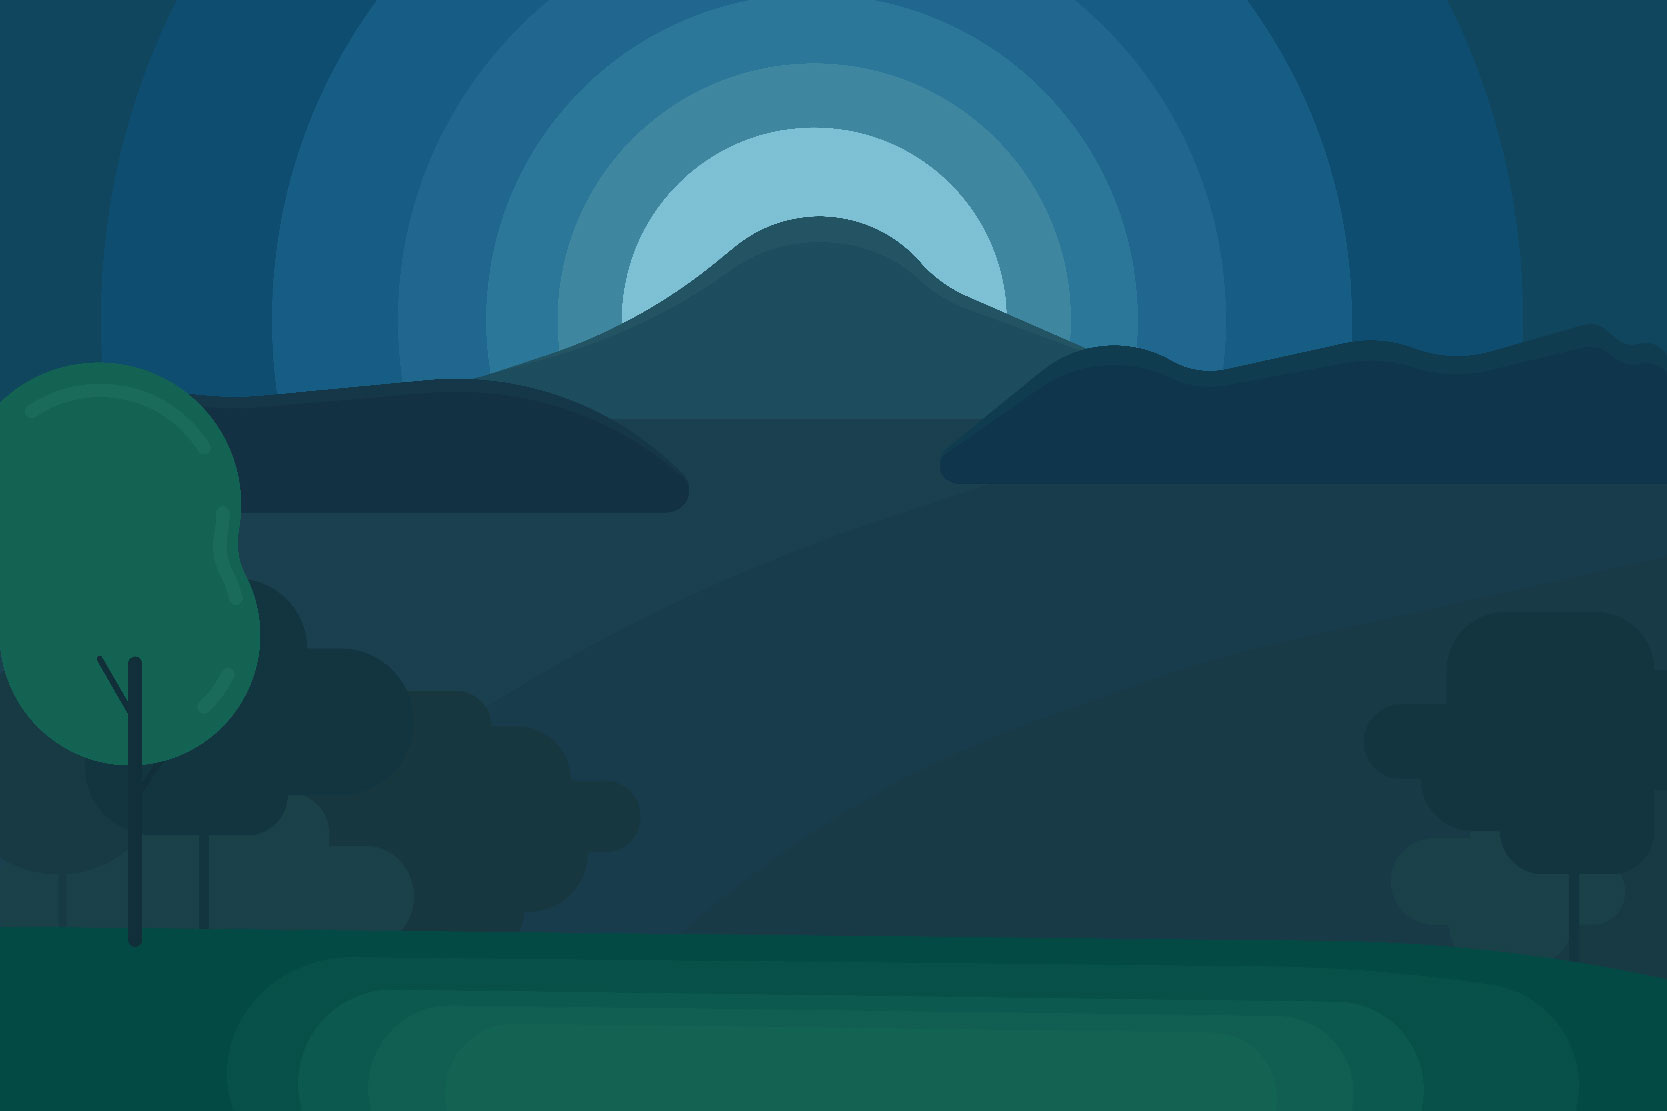 Mountain landscapes - Vector illustrations example image 6